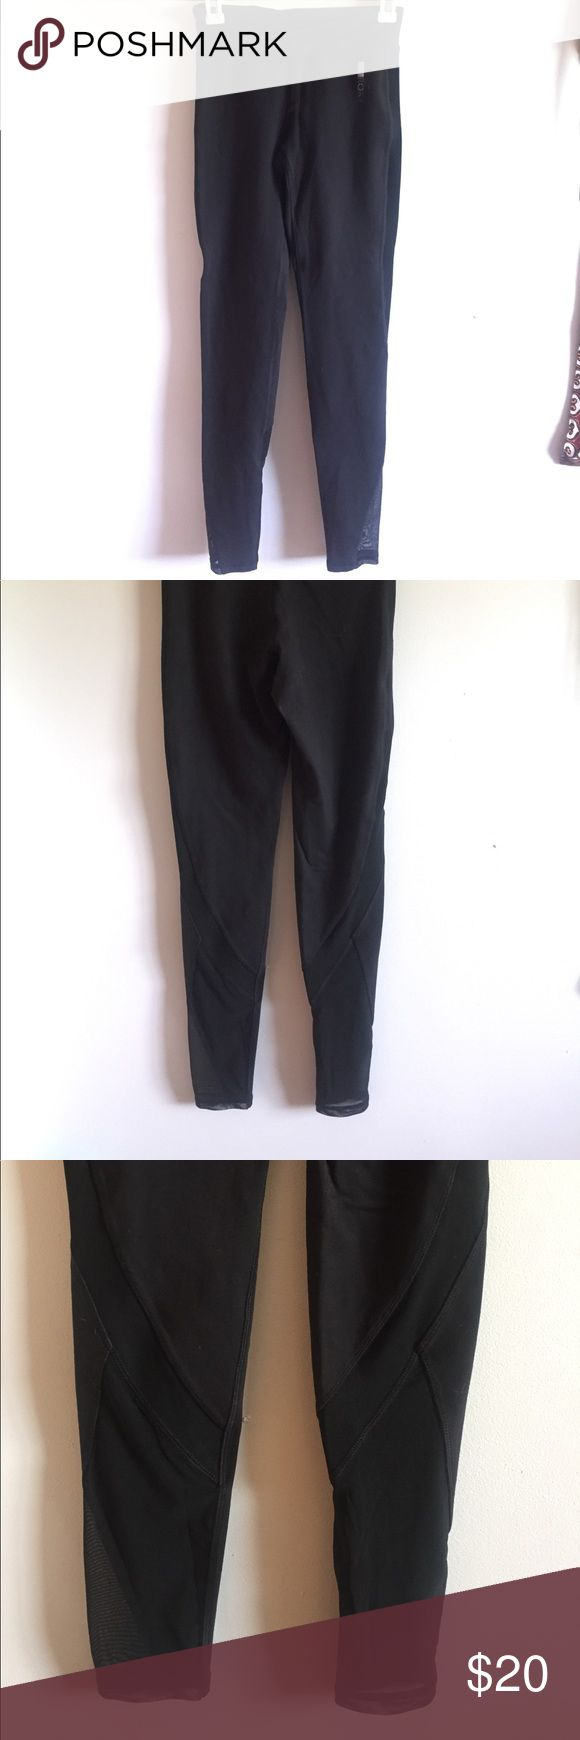 Mesh roxy leggins All black comfortable Original roxy leggins. All main tags have been removed. Roxy Pants Leggings